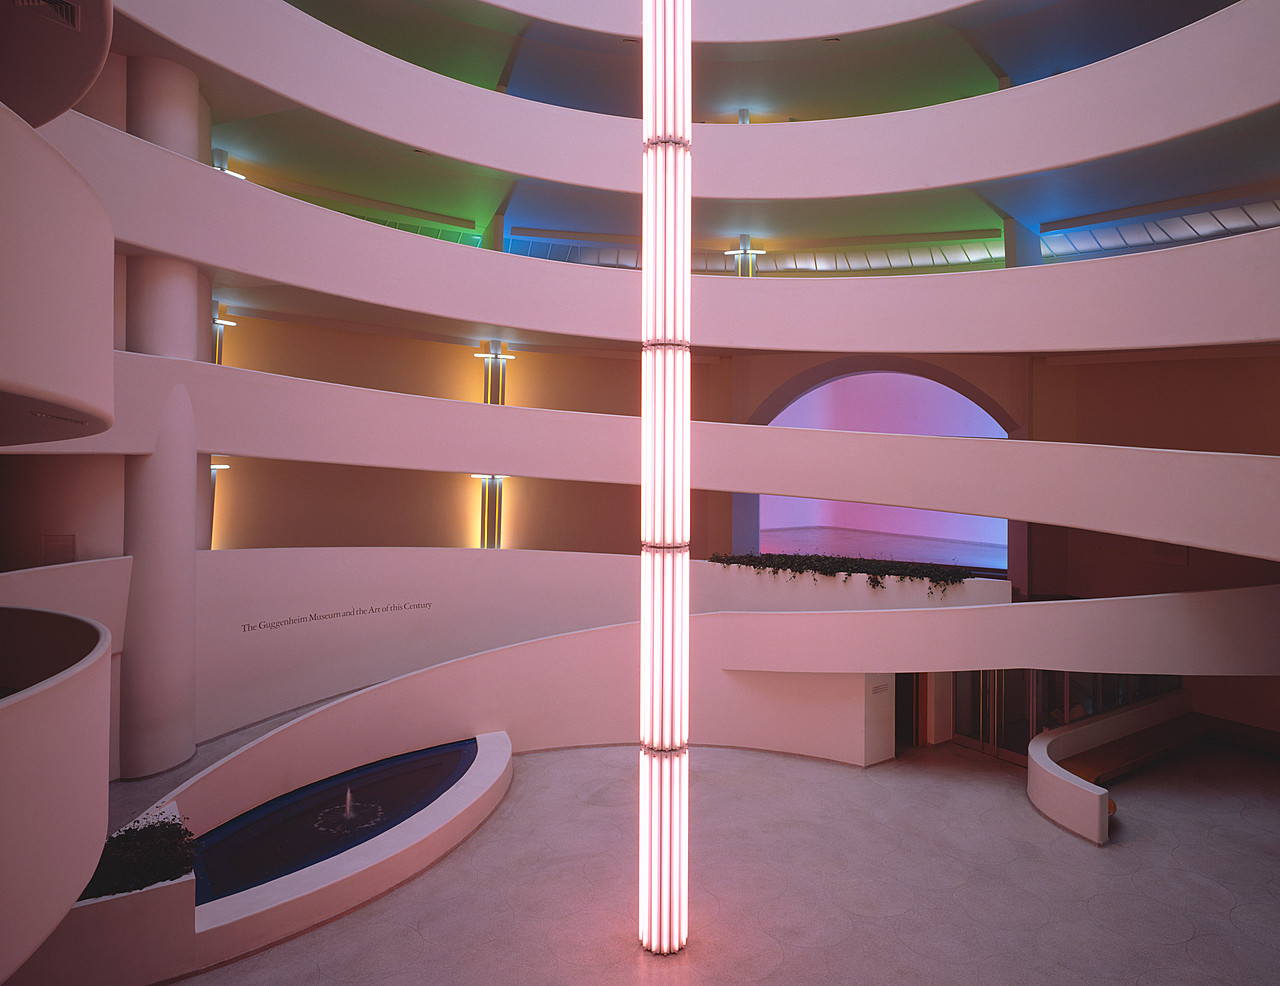 Dan Flavin, untitled (to Tracy, to celebrate the love of a lifetime), 1992. Pink, green, blue, yellow, daylight, red, and ultraviolet fluorescent light, dimensions variable